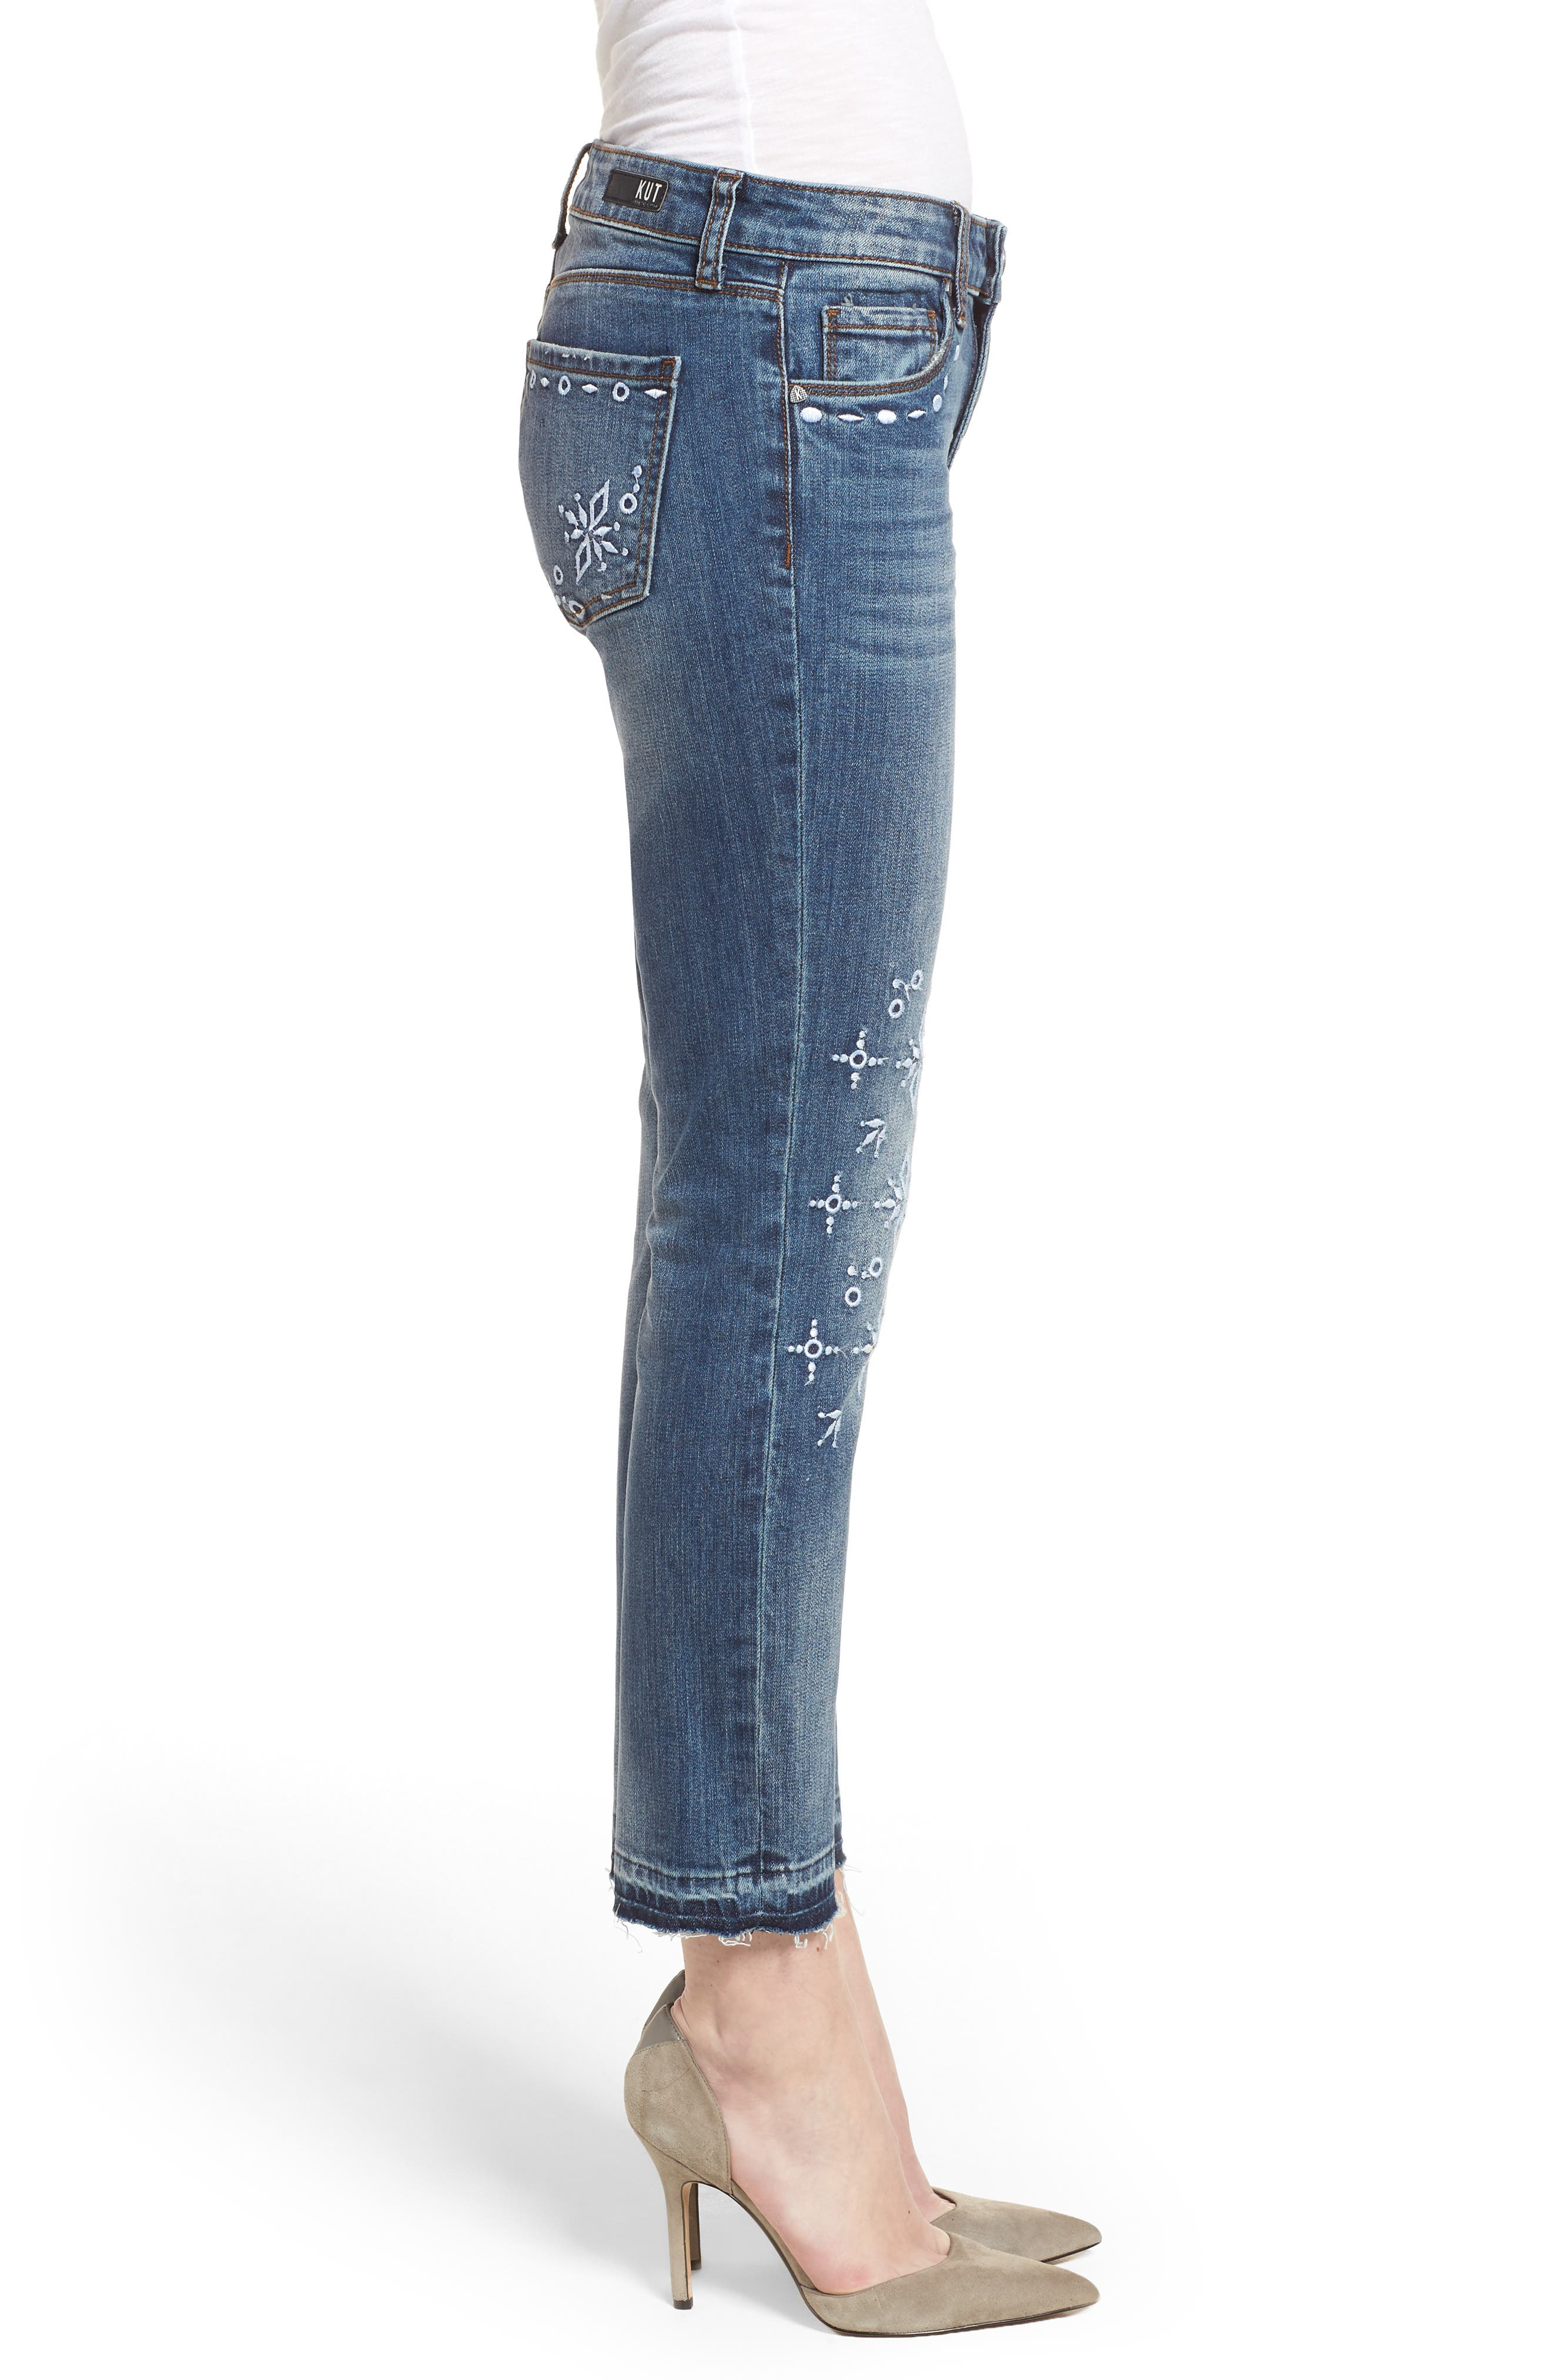 Reese Release Hem Embroidered Jeans,                             Alternate thumbnail 3, color,                             Originated